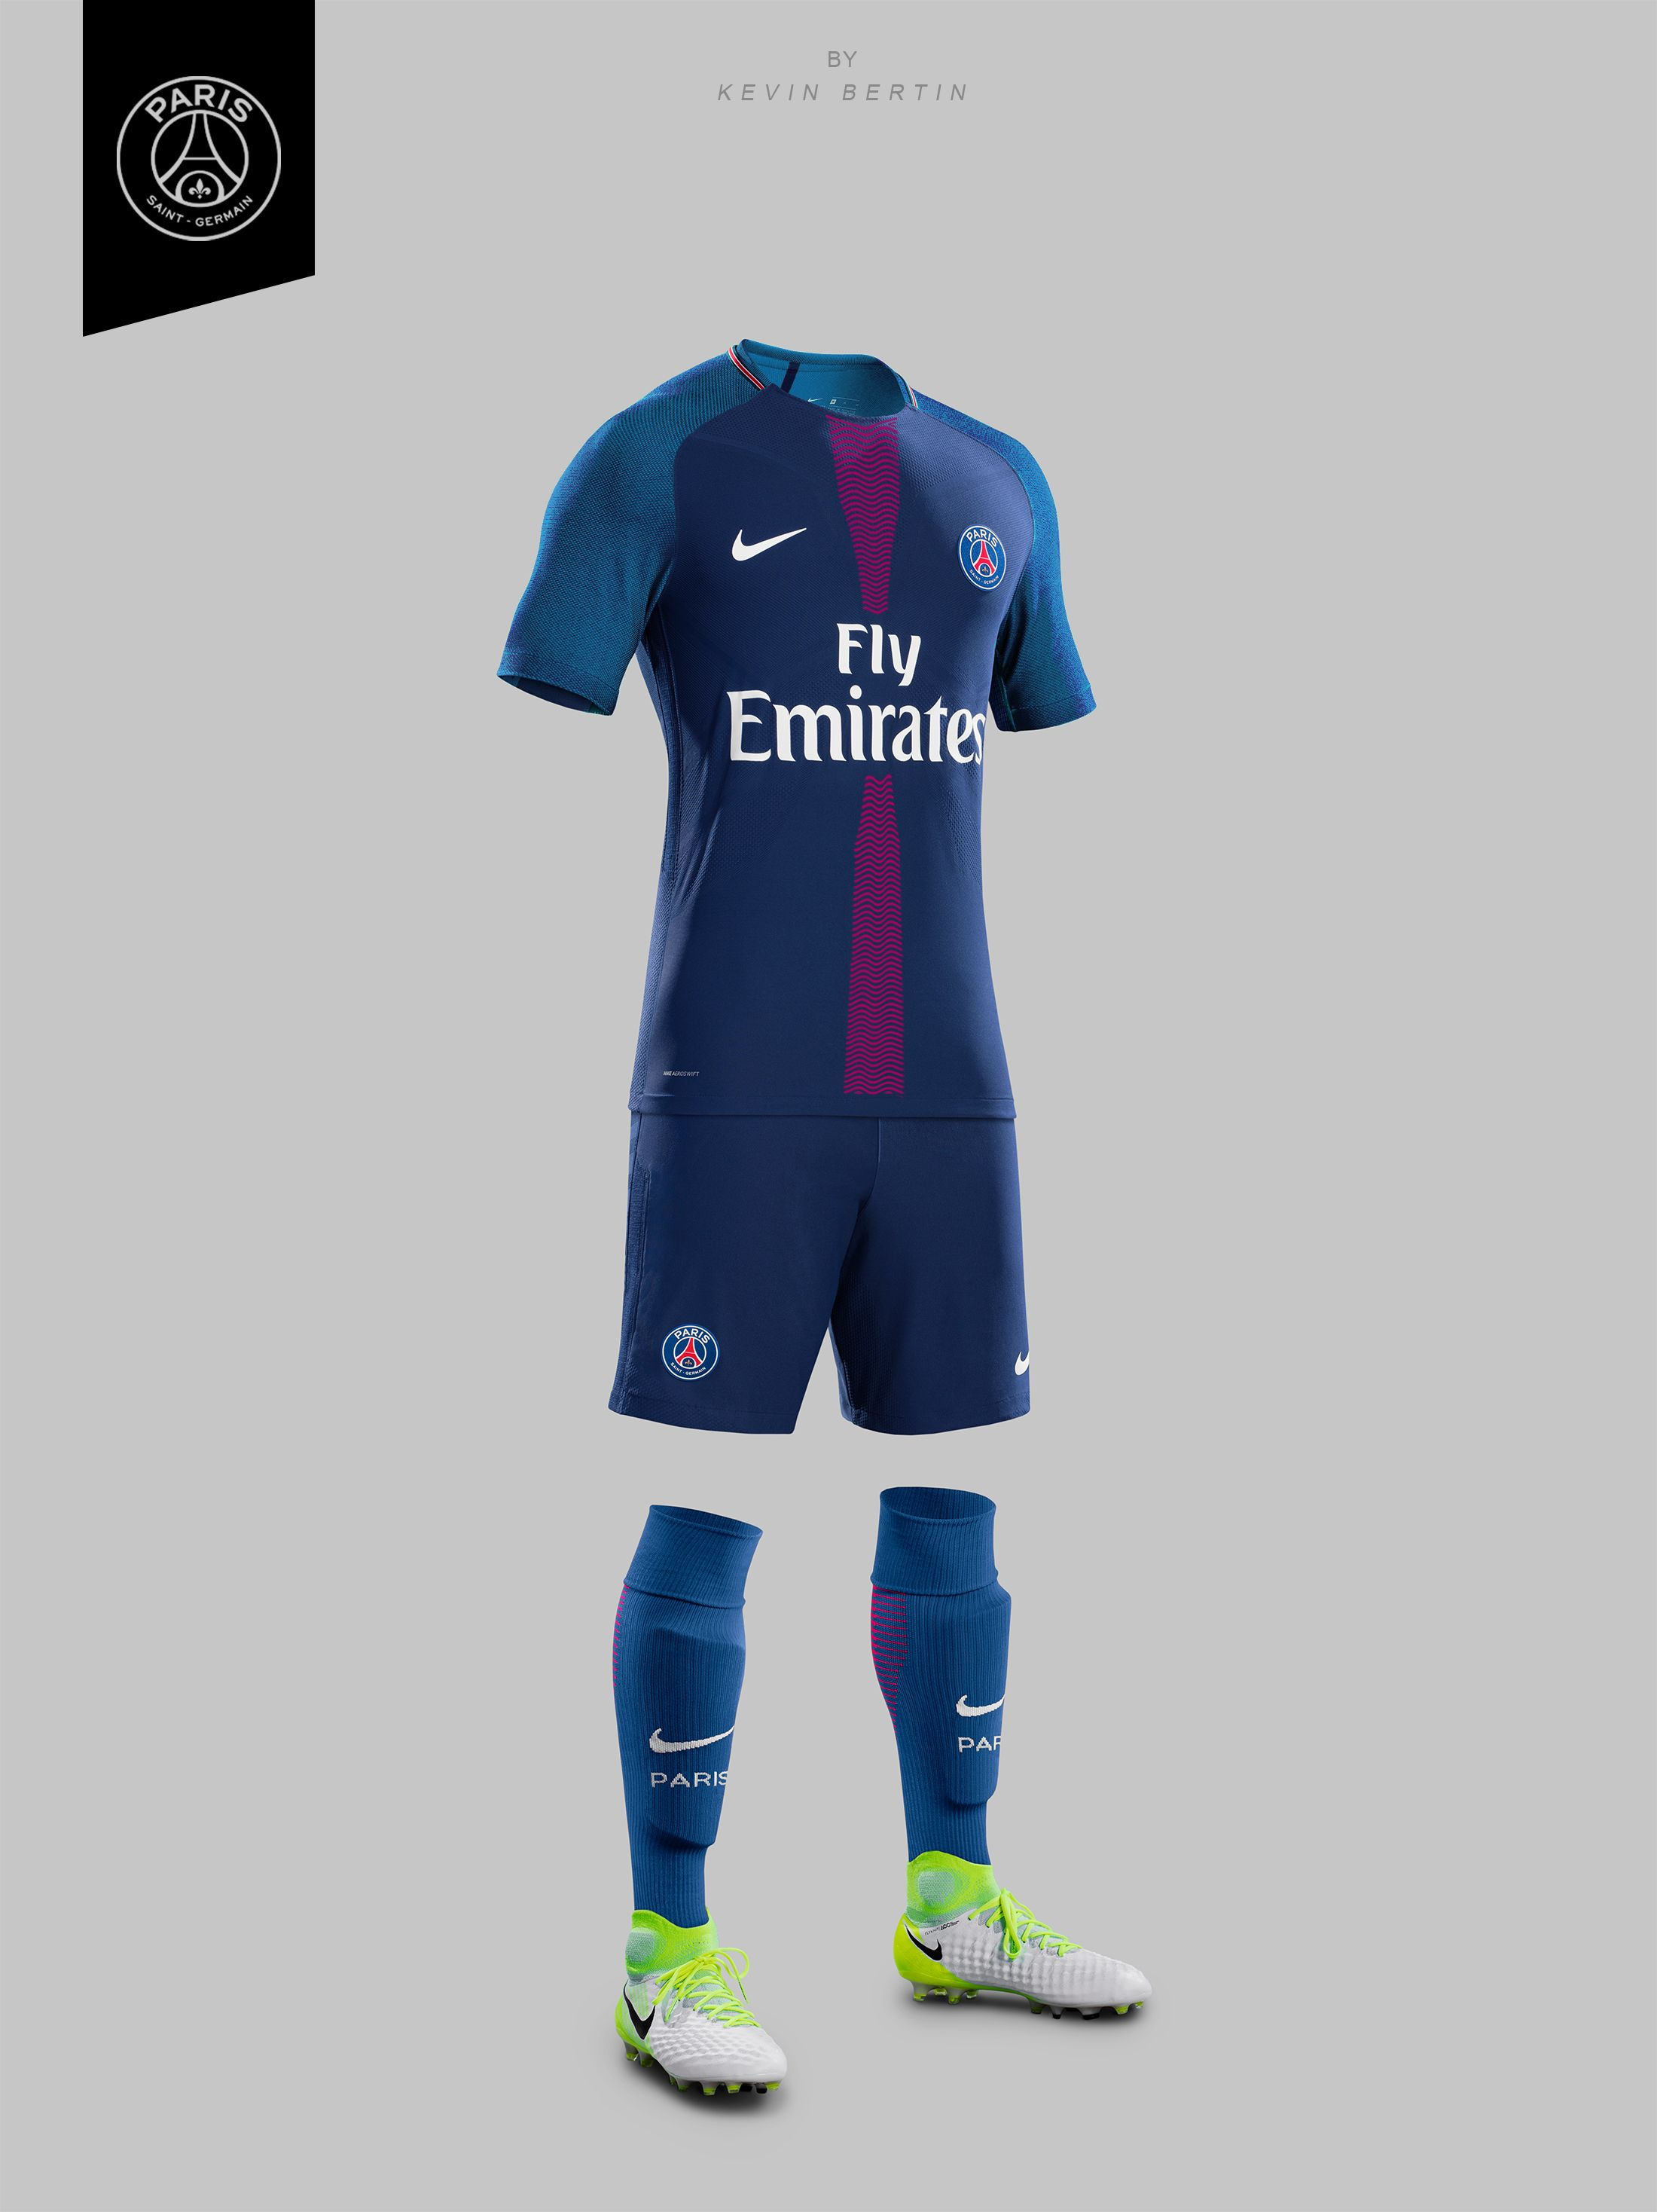 Psg concept design by kevin bertin jersey maillot 2018 for Cuarto kit del america 2018